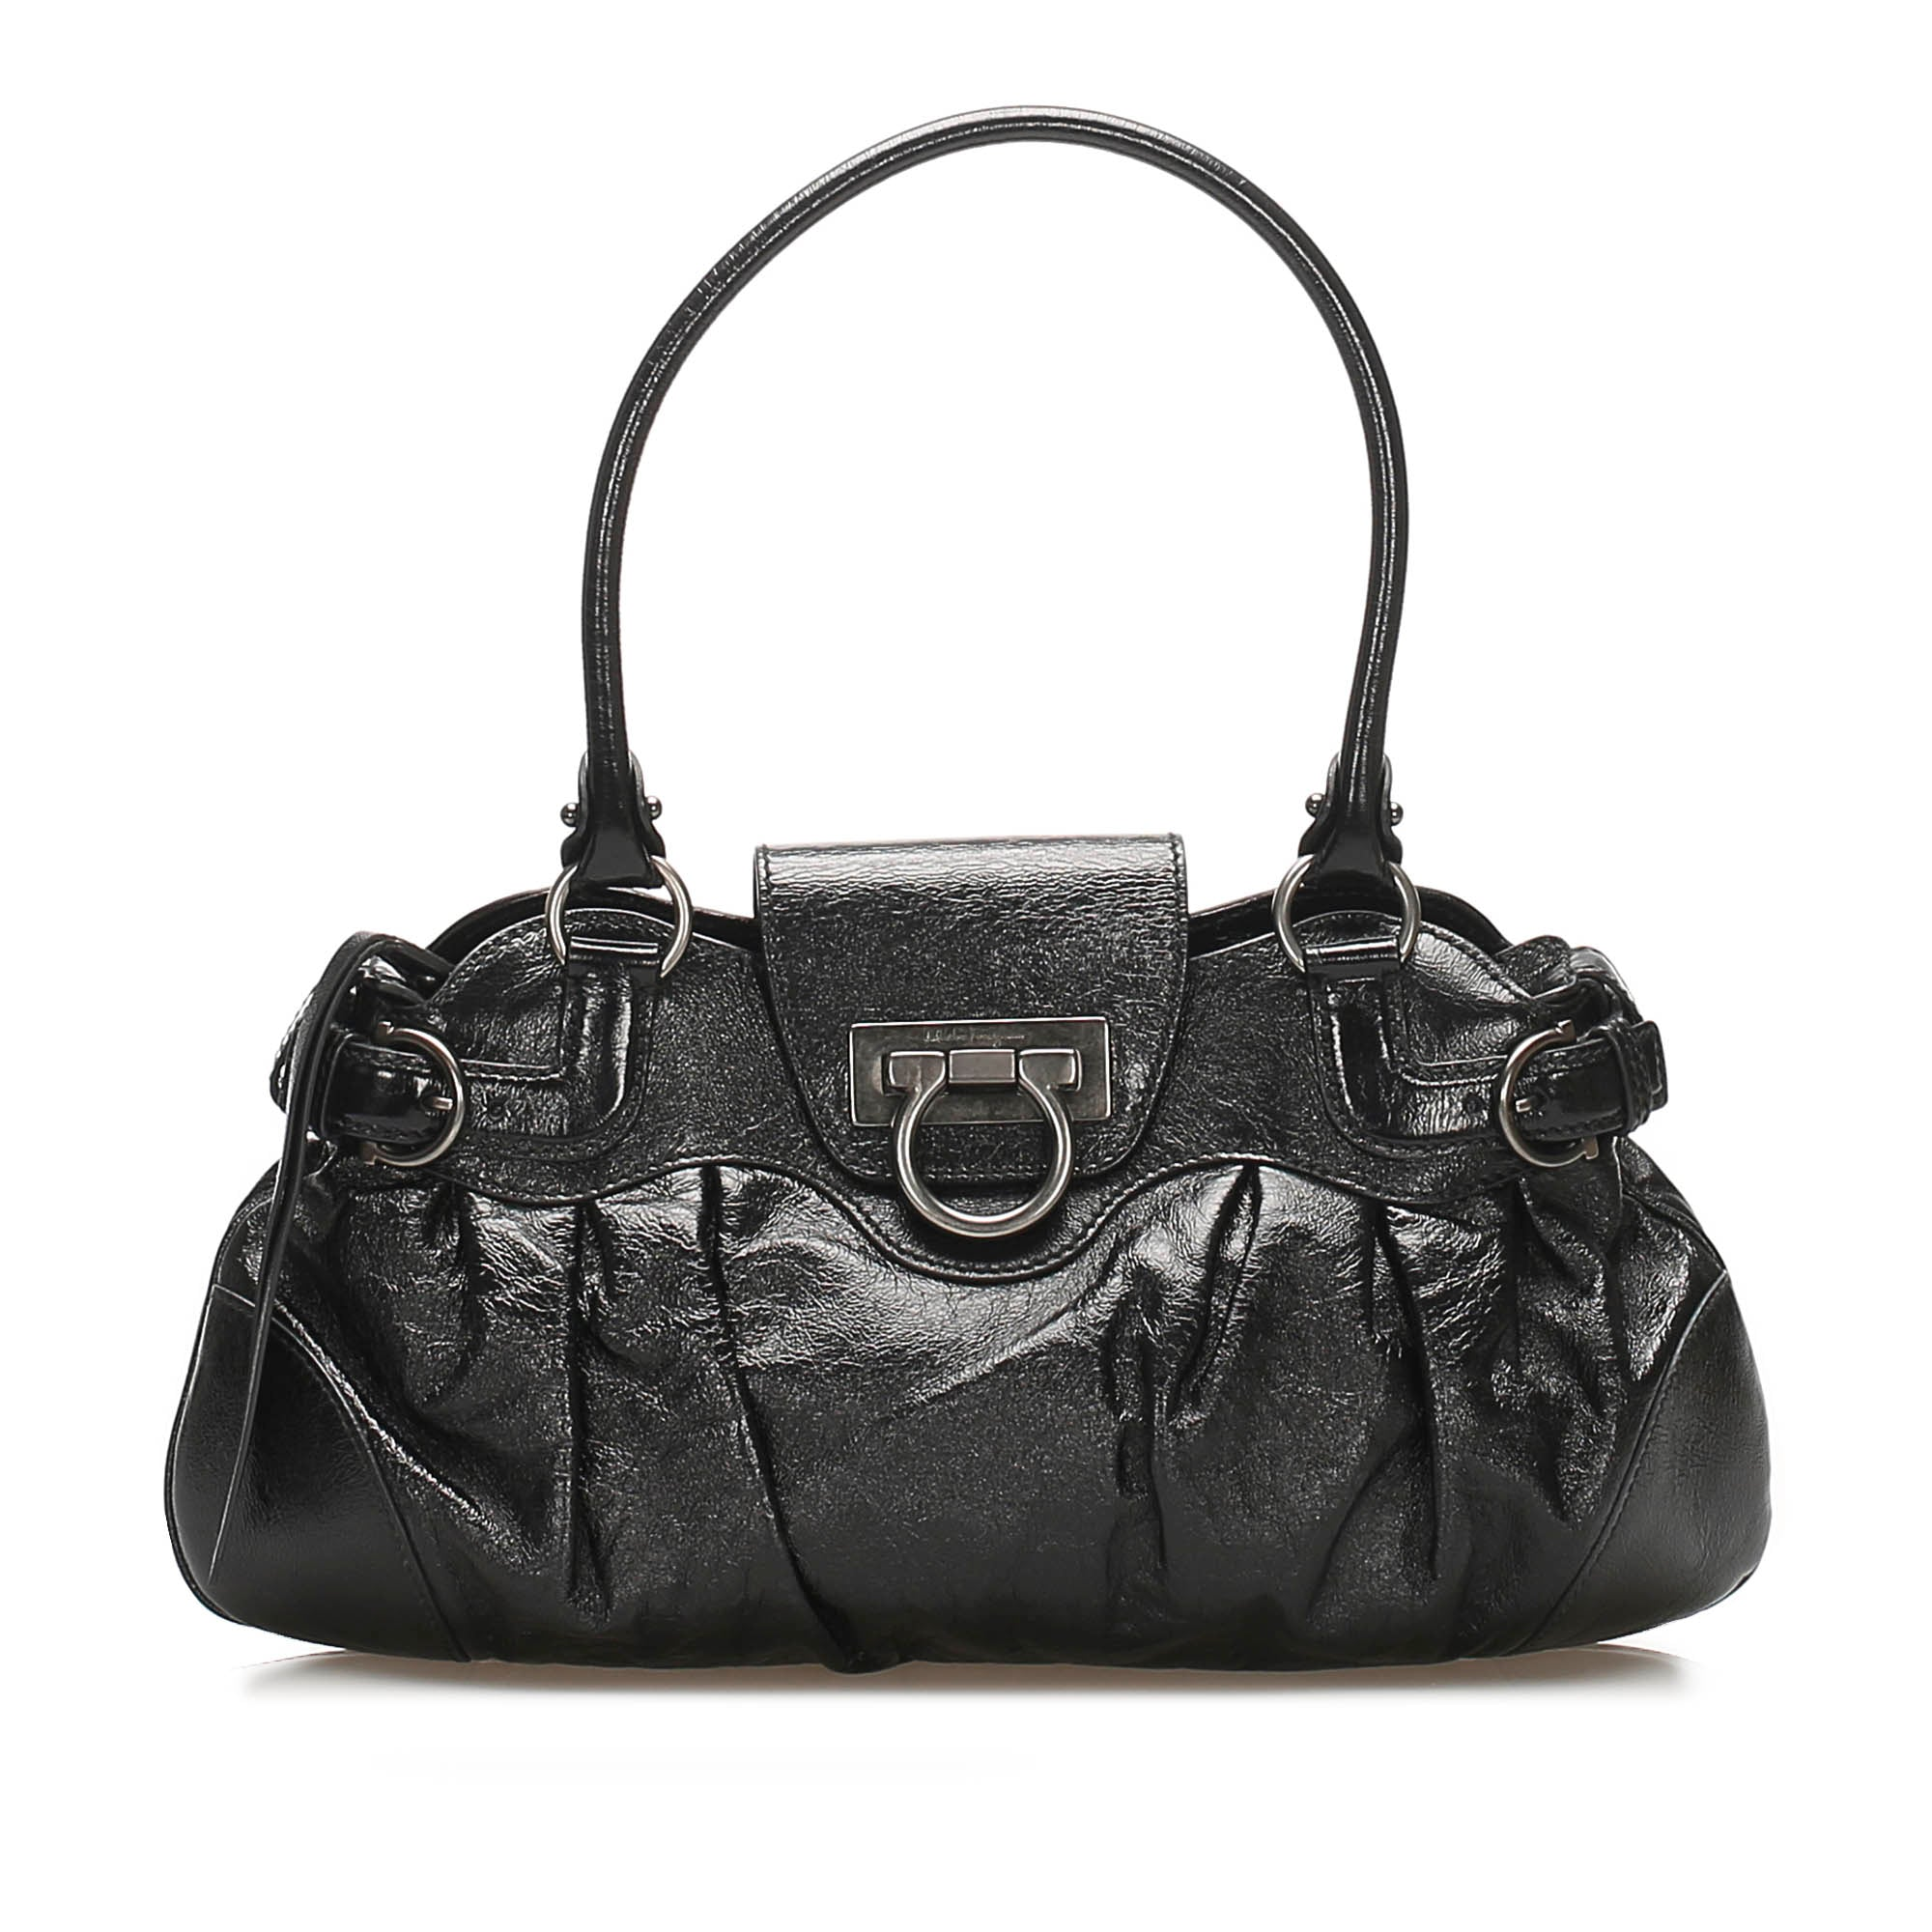 Ferragamo Black Gancini Marisa Leather Handbag